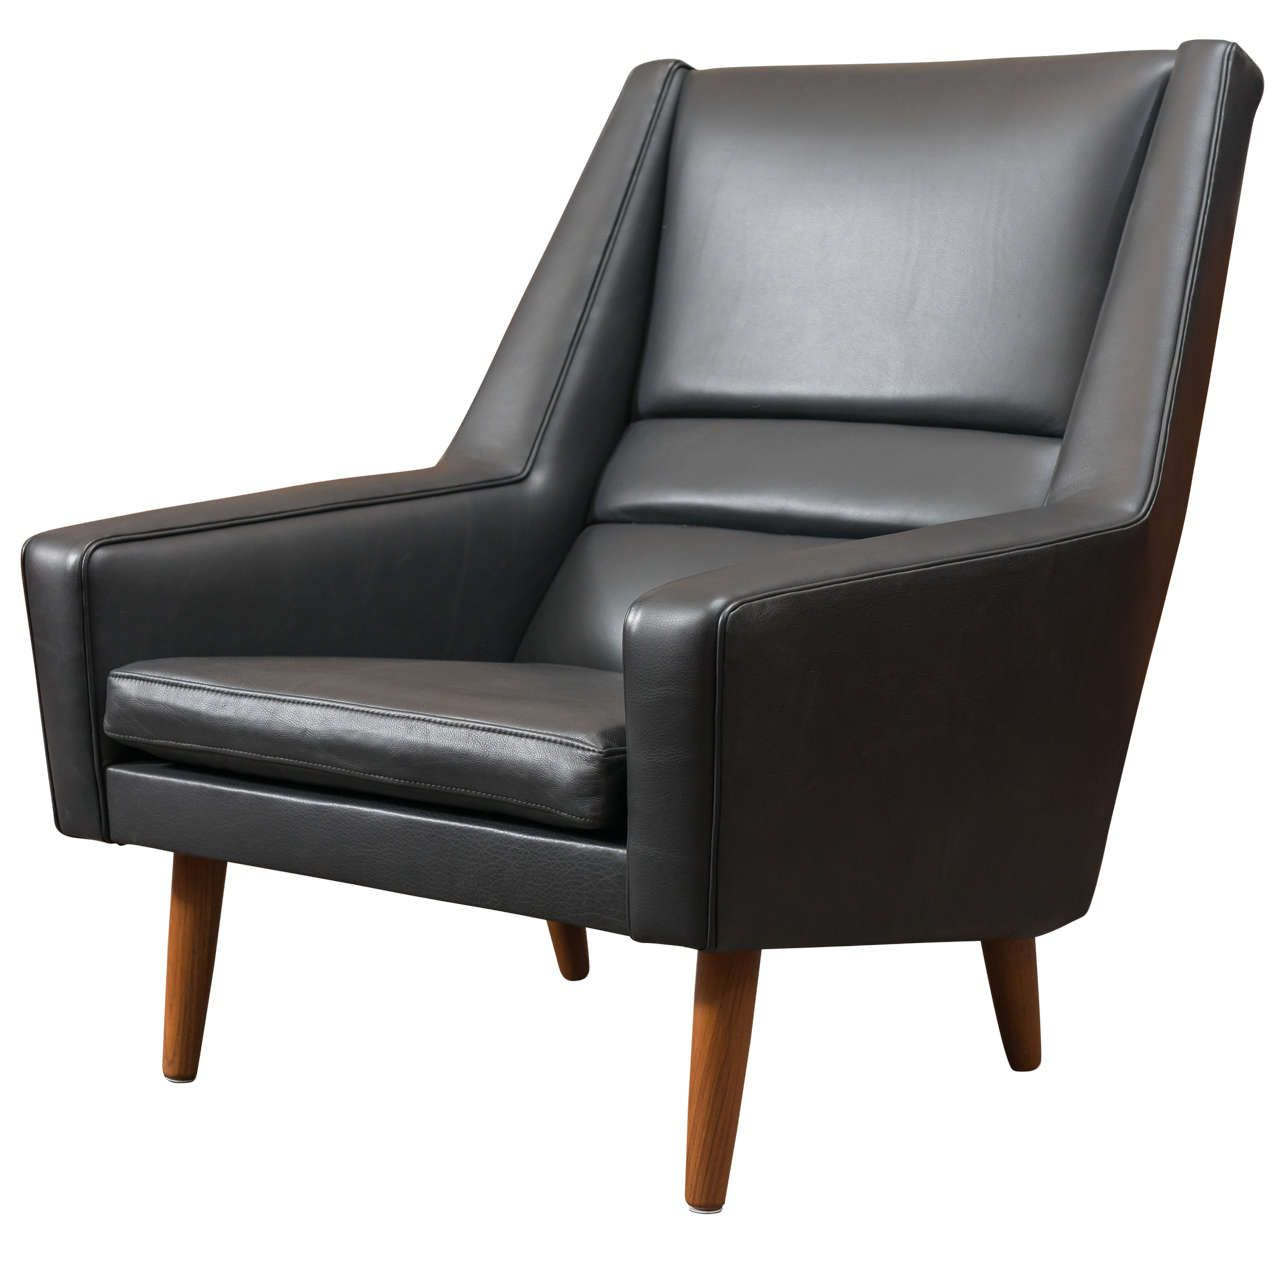 Danish leather high back lounge chair from a unique